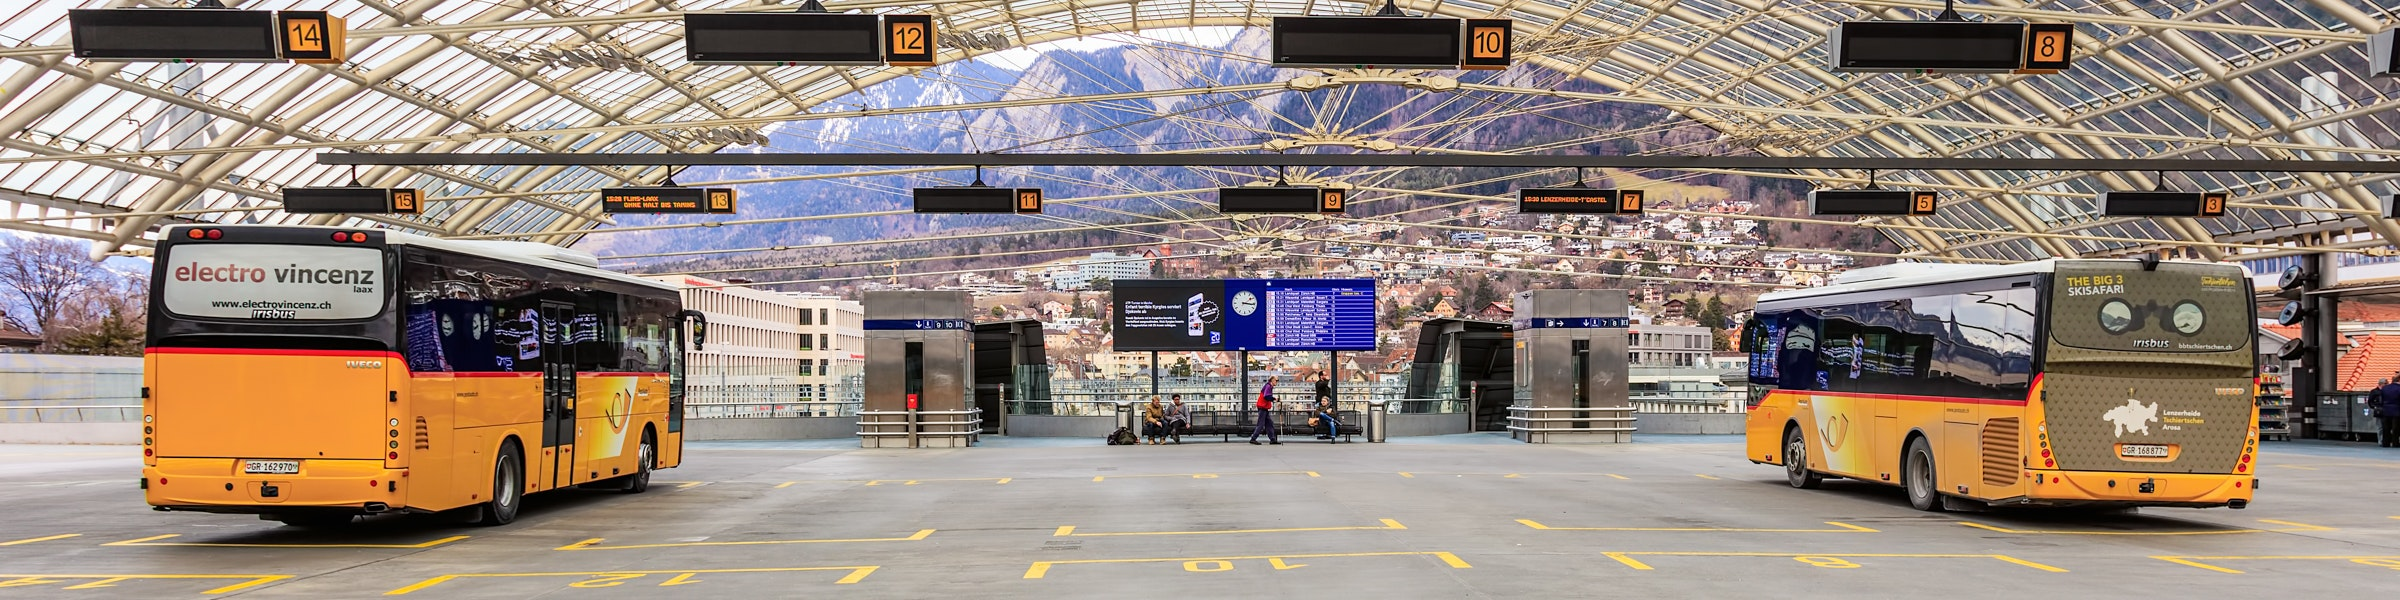 Chur bus station